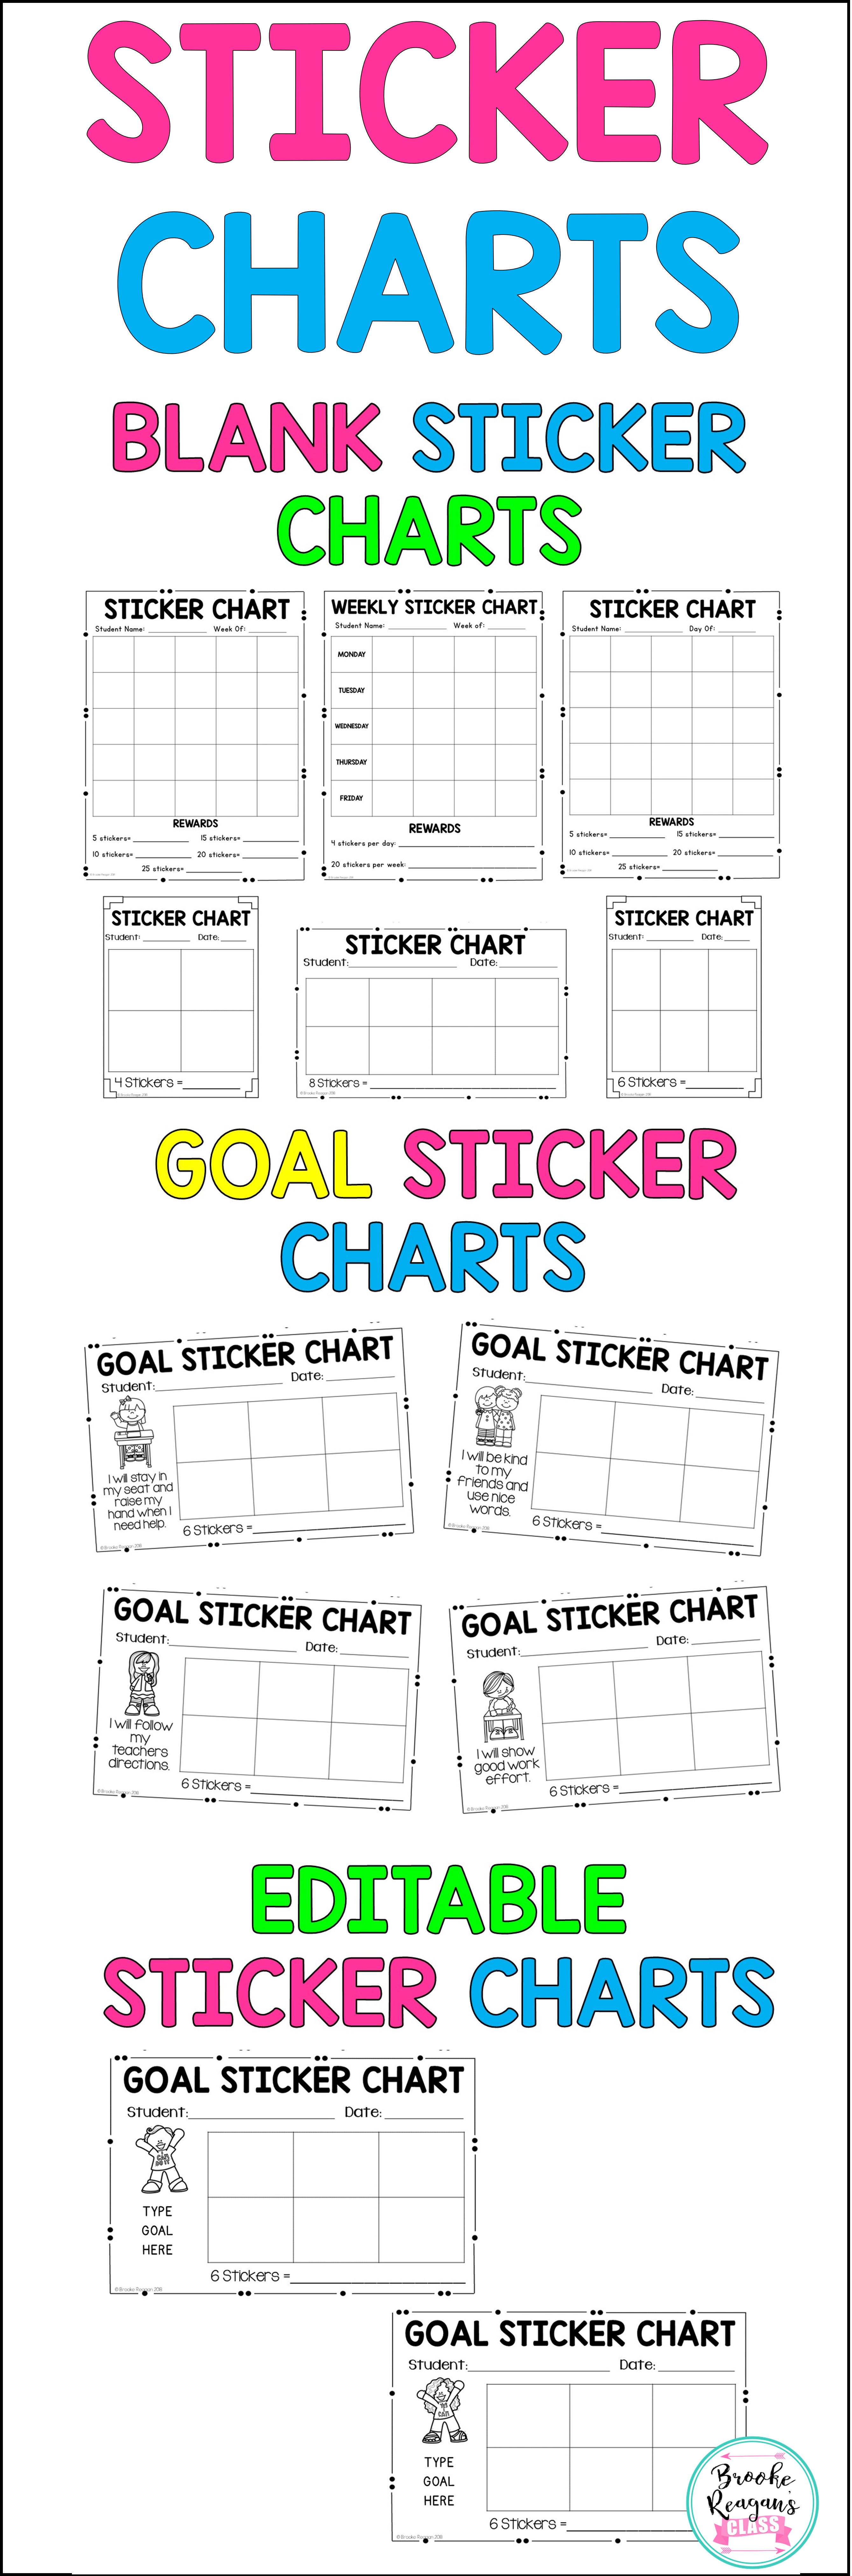 Clip charts conduct. Sticker blank and goal